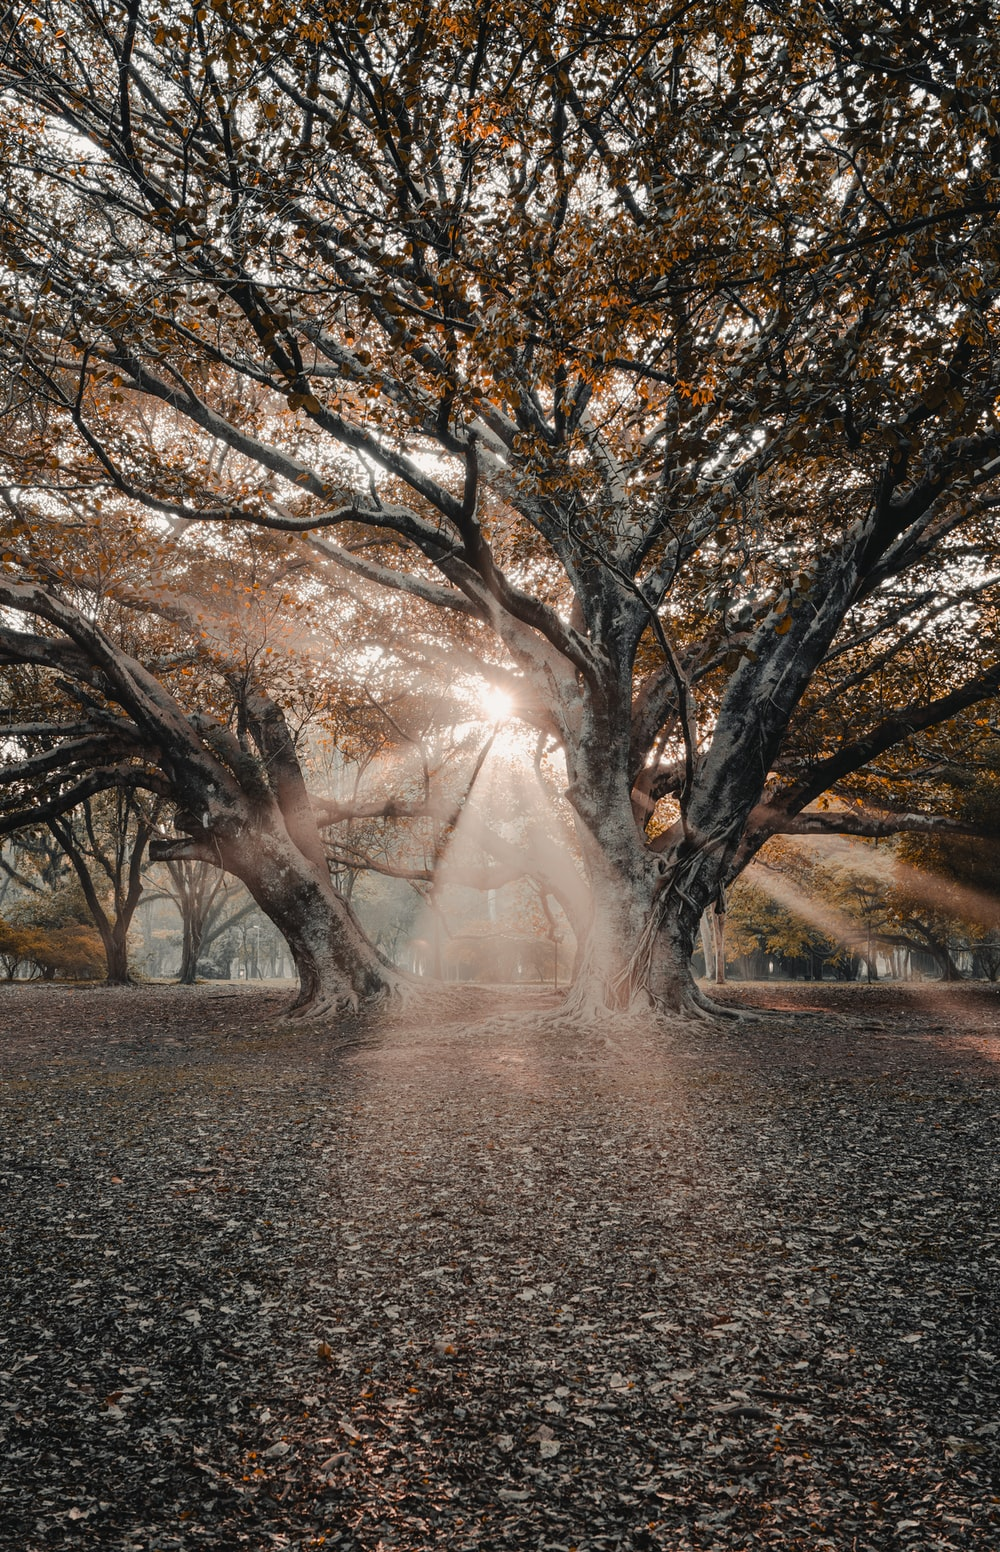 sunlight passing through tree branches